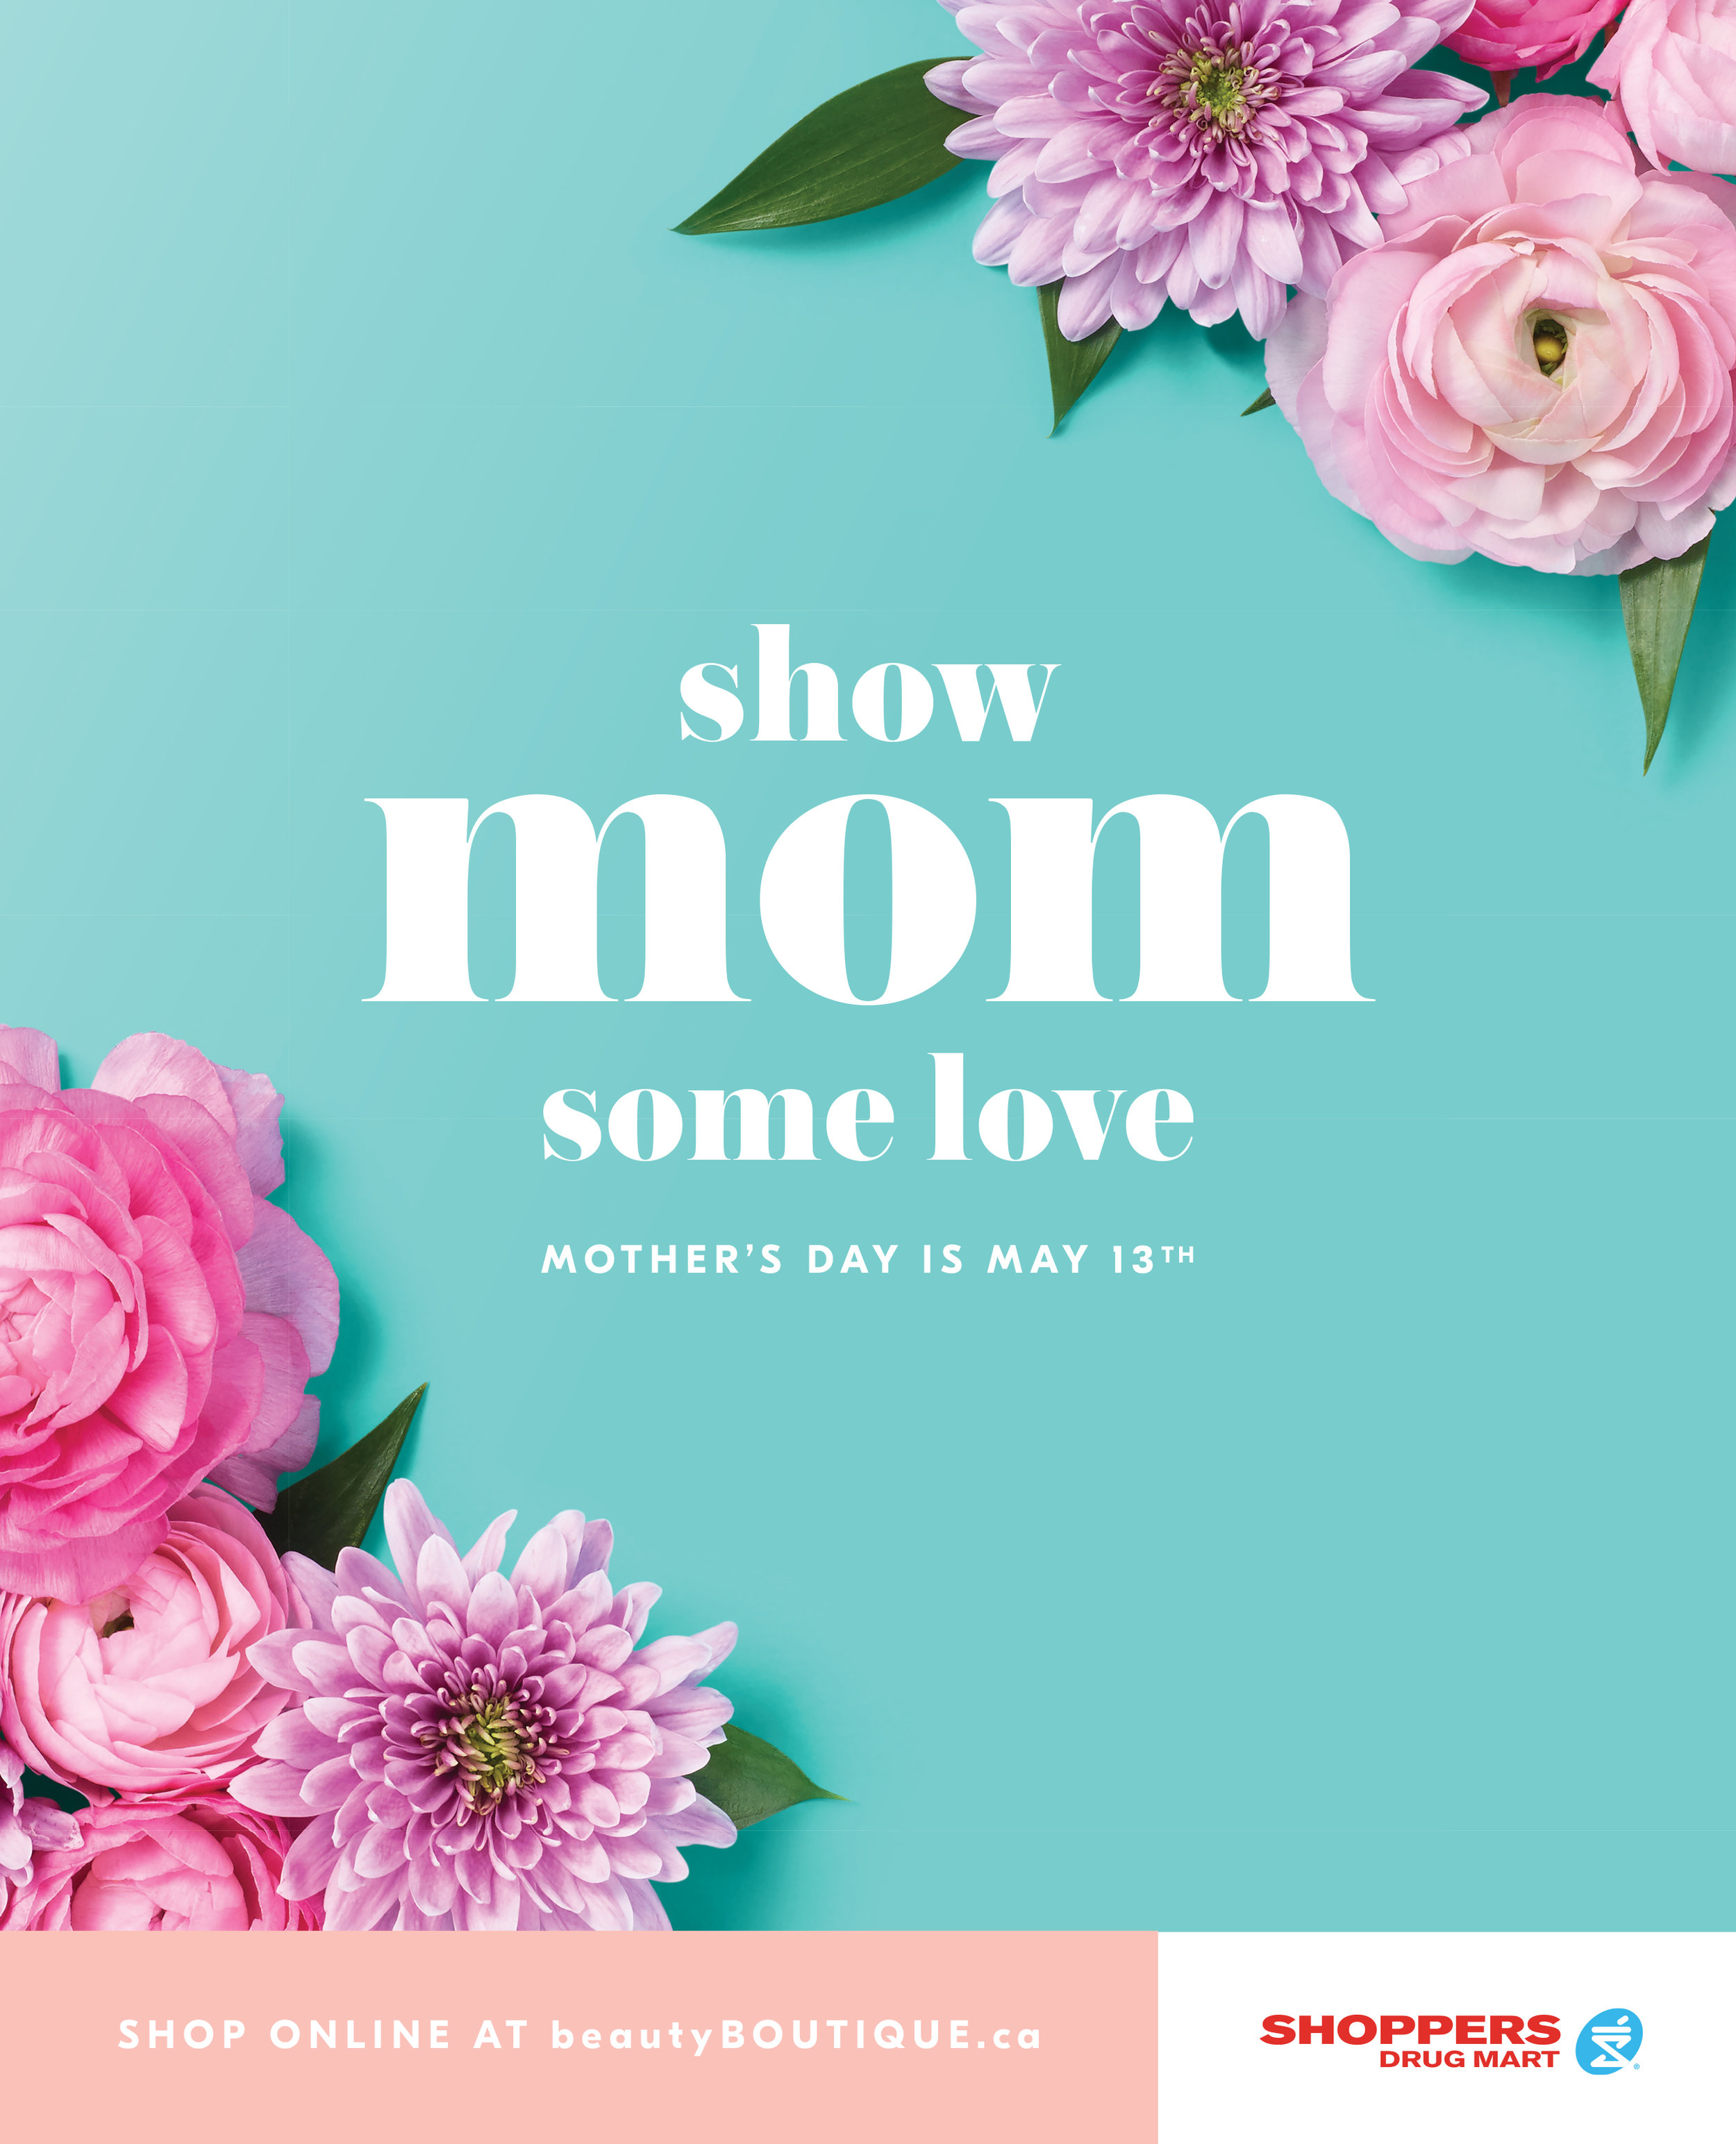 """Show Mom Some Love.""  Mother's Day Gift Guide. Shoppers Drug Mart. January 2018. Photo: Luis Albuquerque. Art Director: Jacqueline Abernethy"